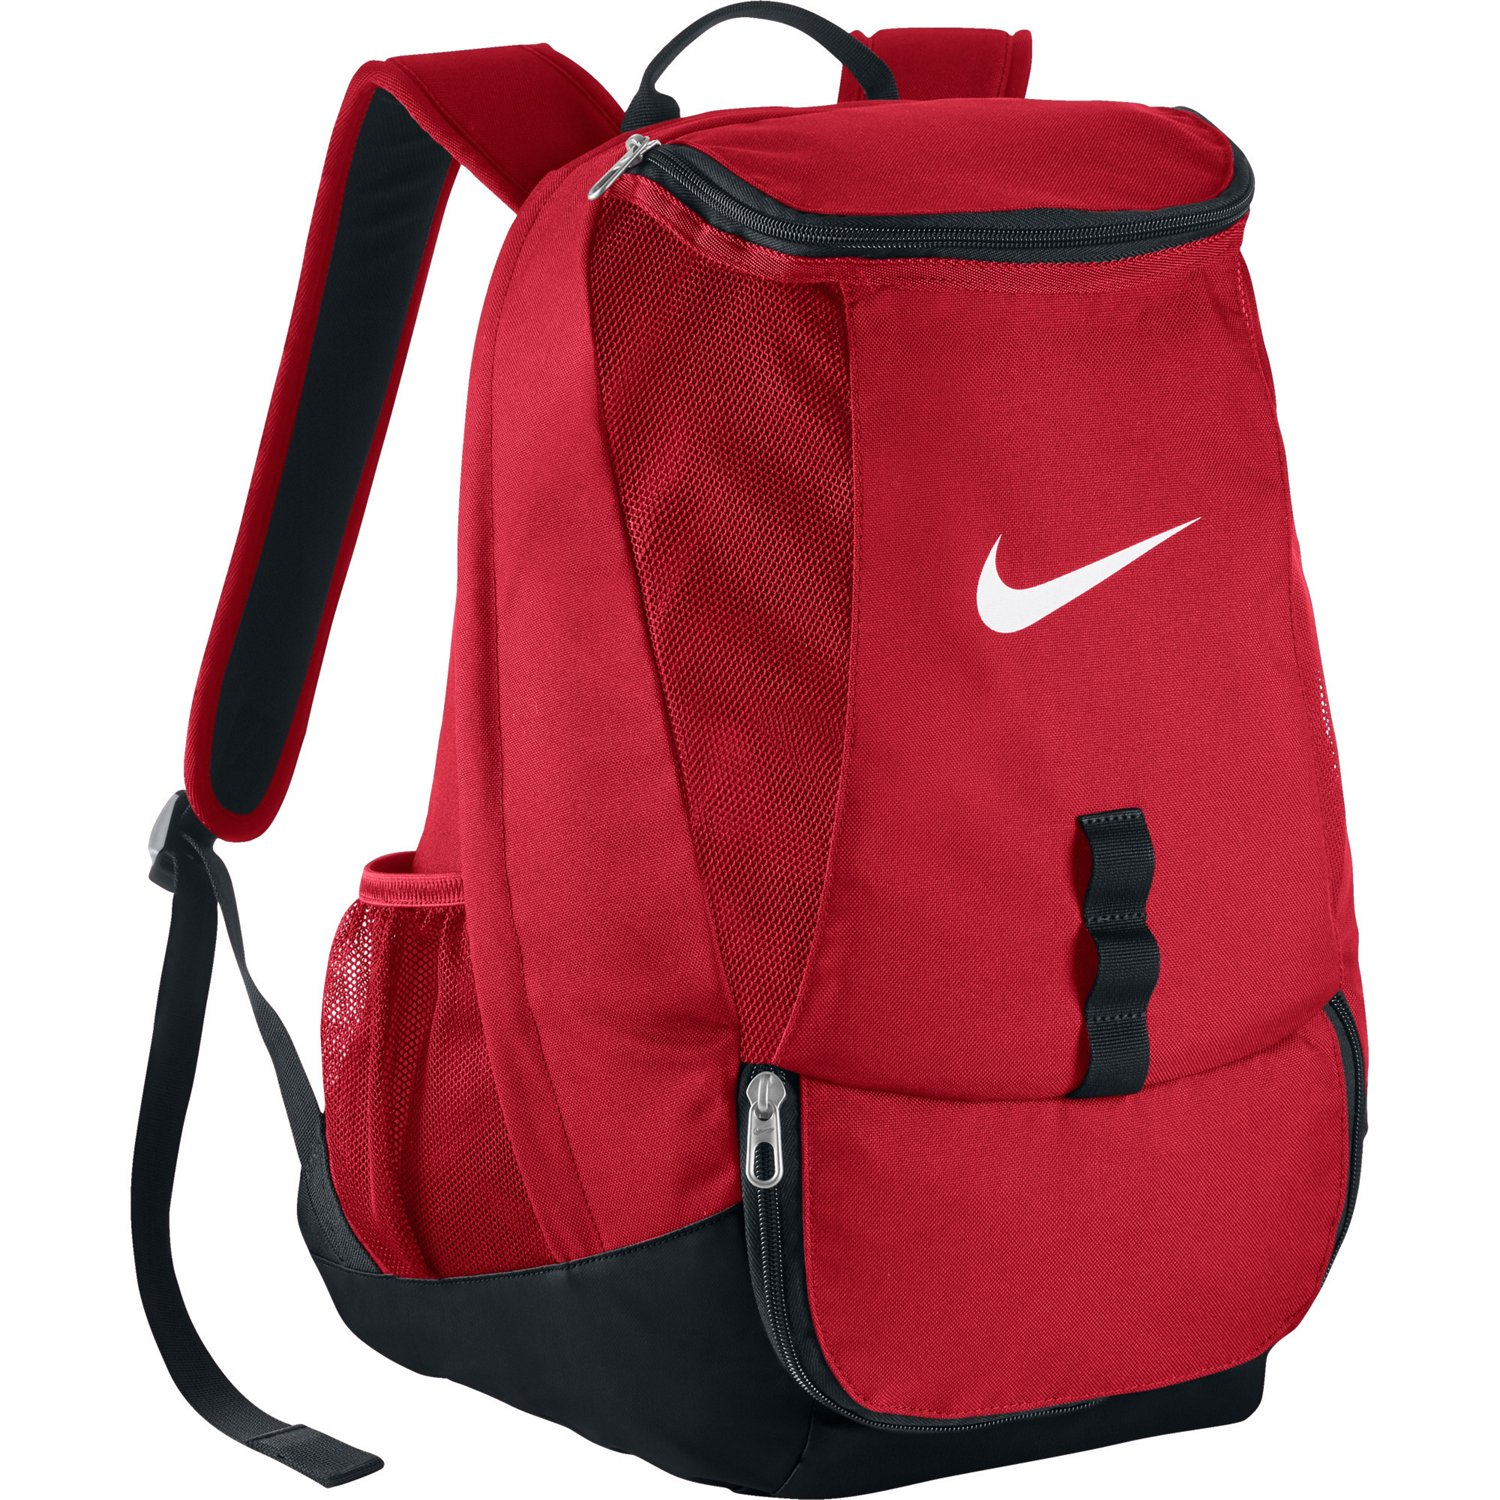 577fcc30a3 Display product reviews for Nike Men s Club Team Swoosh Soccer Backpack